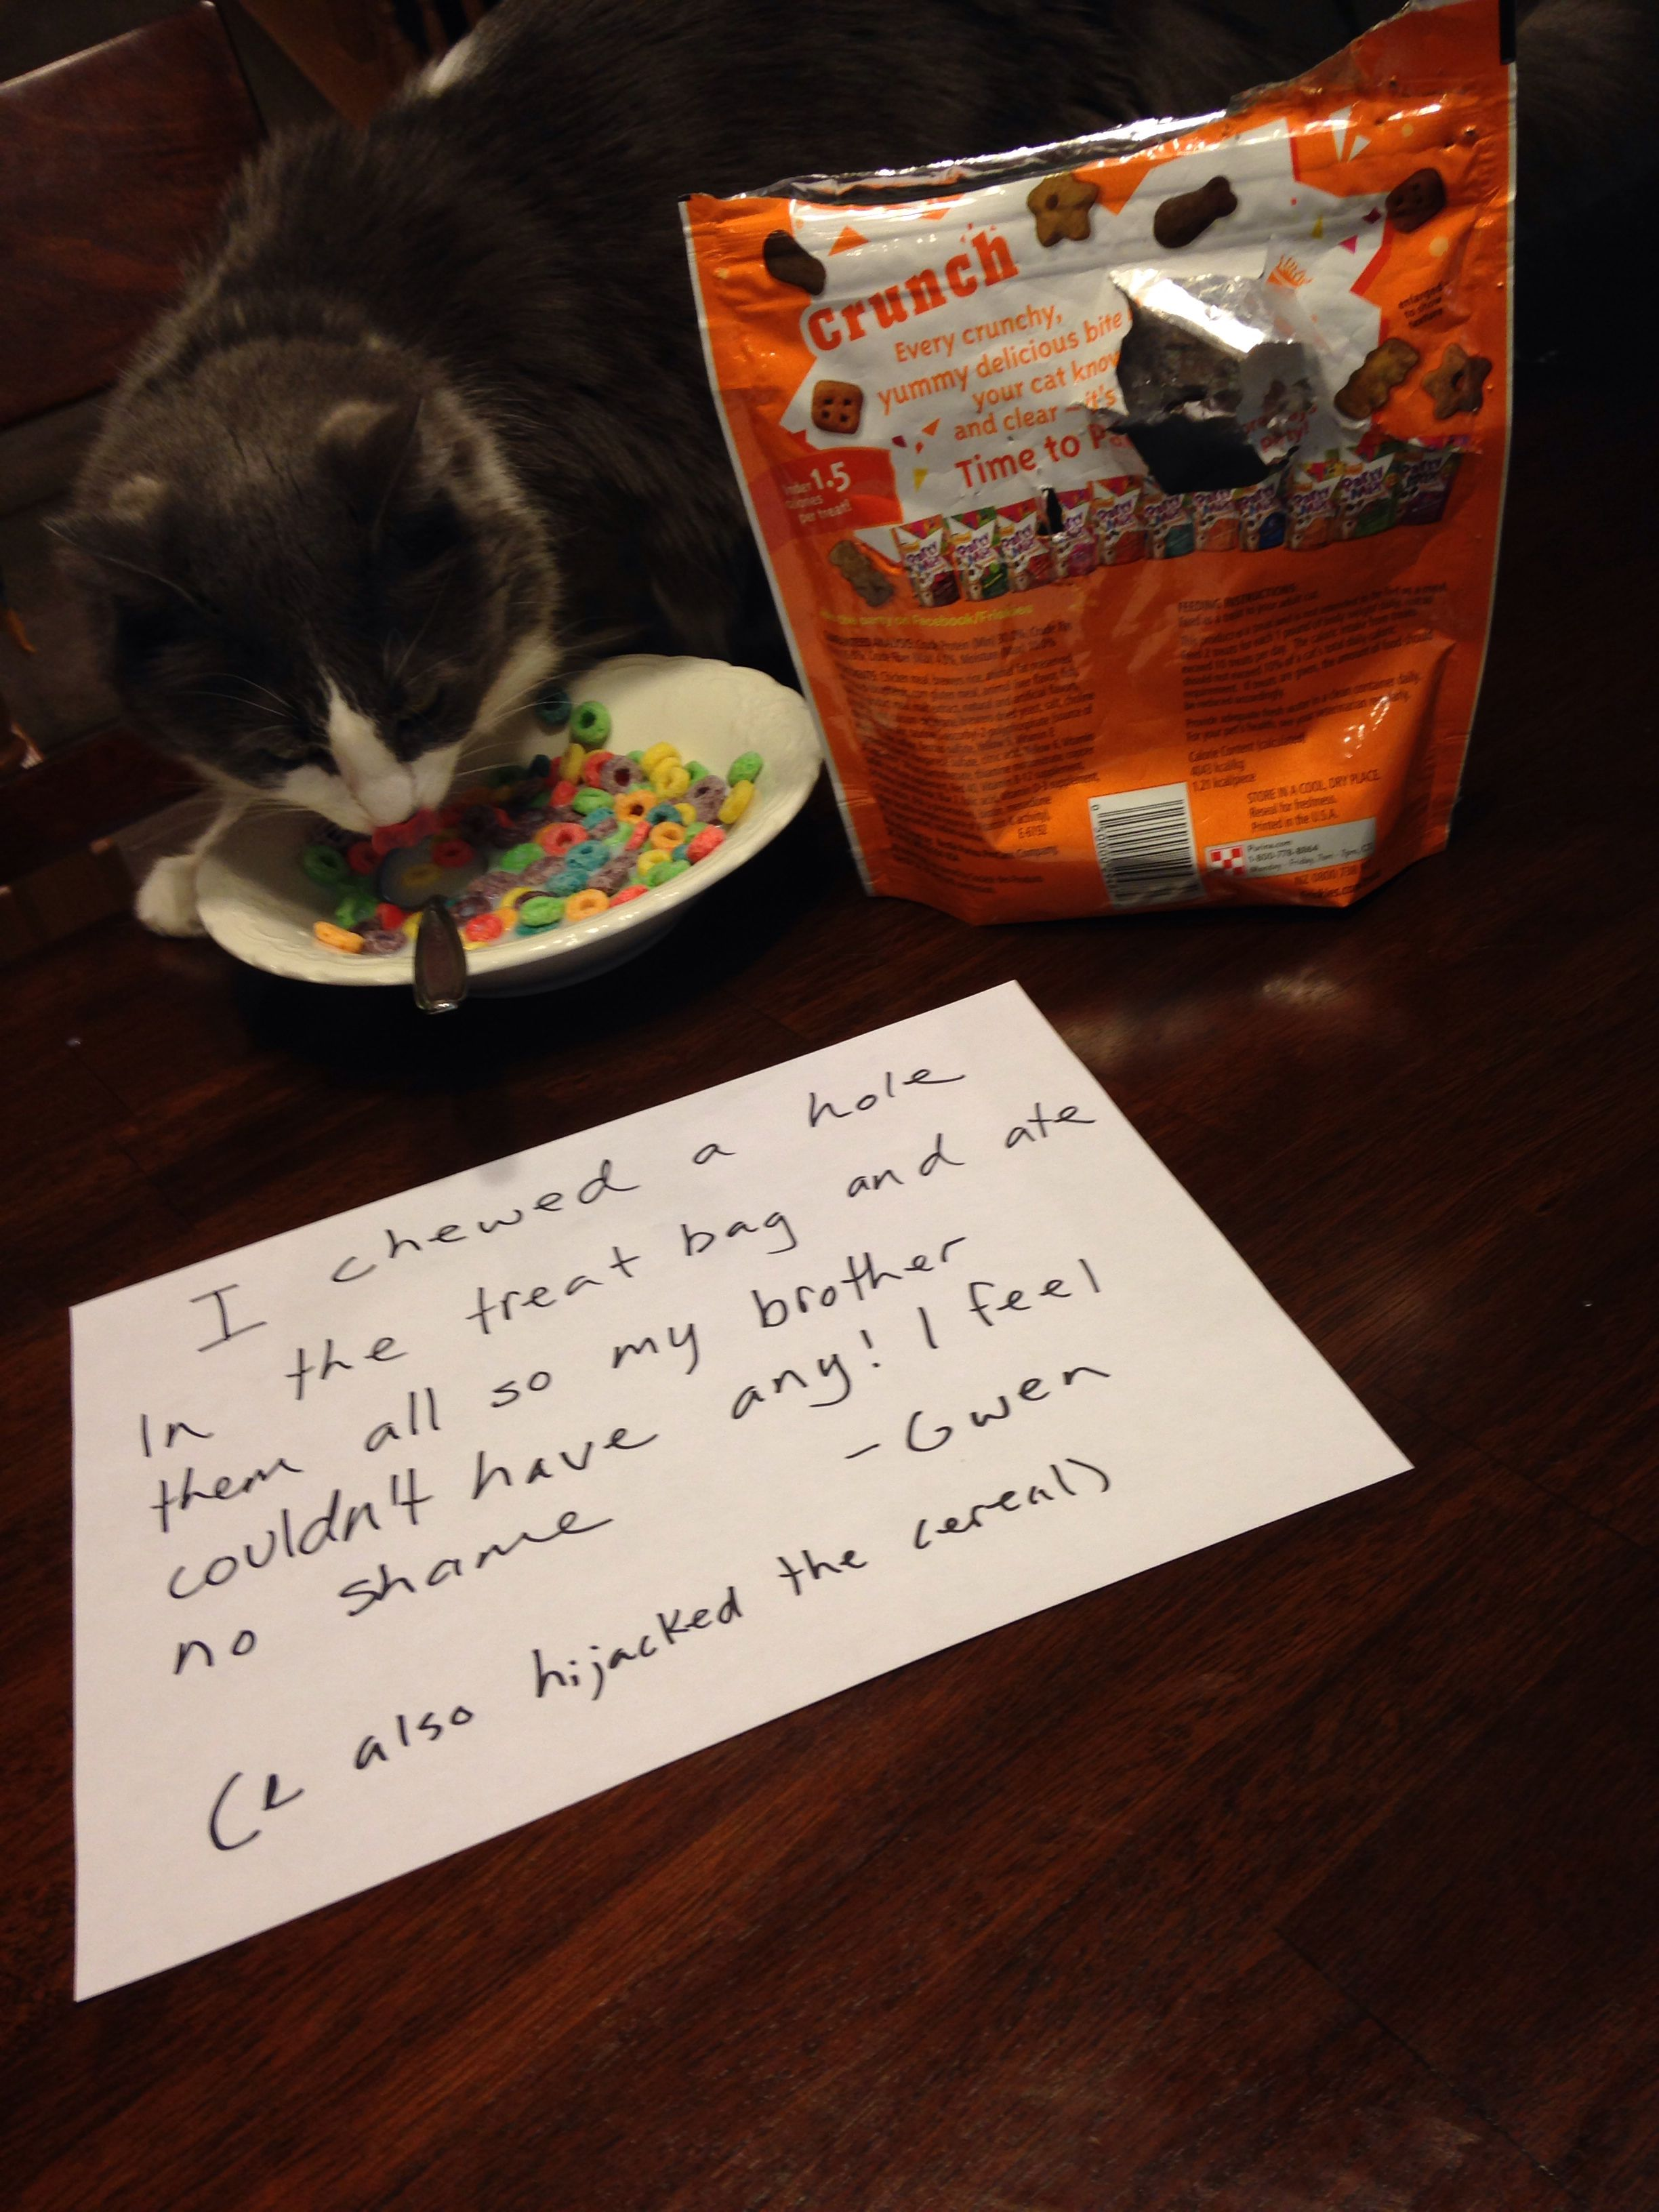 """""""I chewed a hole in the treat bag and ate then all so my brother couldn't have any! I have no shame!  -Gwen  (I also hijacked the cereal)""""  #cat shaming"""